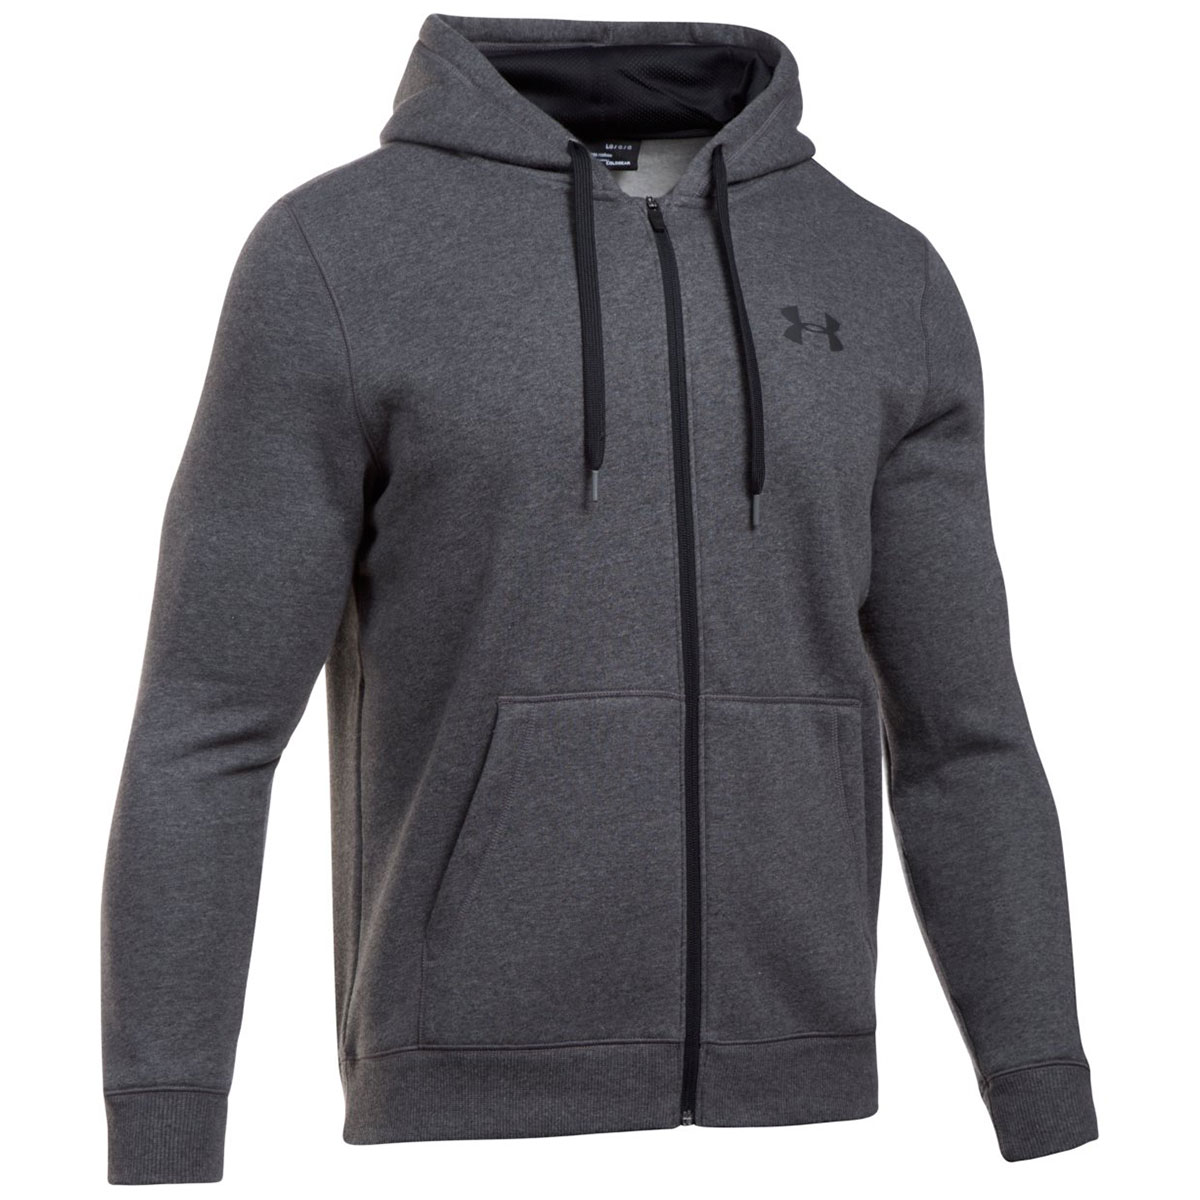 Gray under armour hoodie